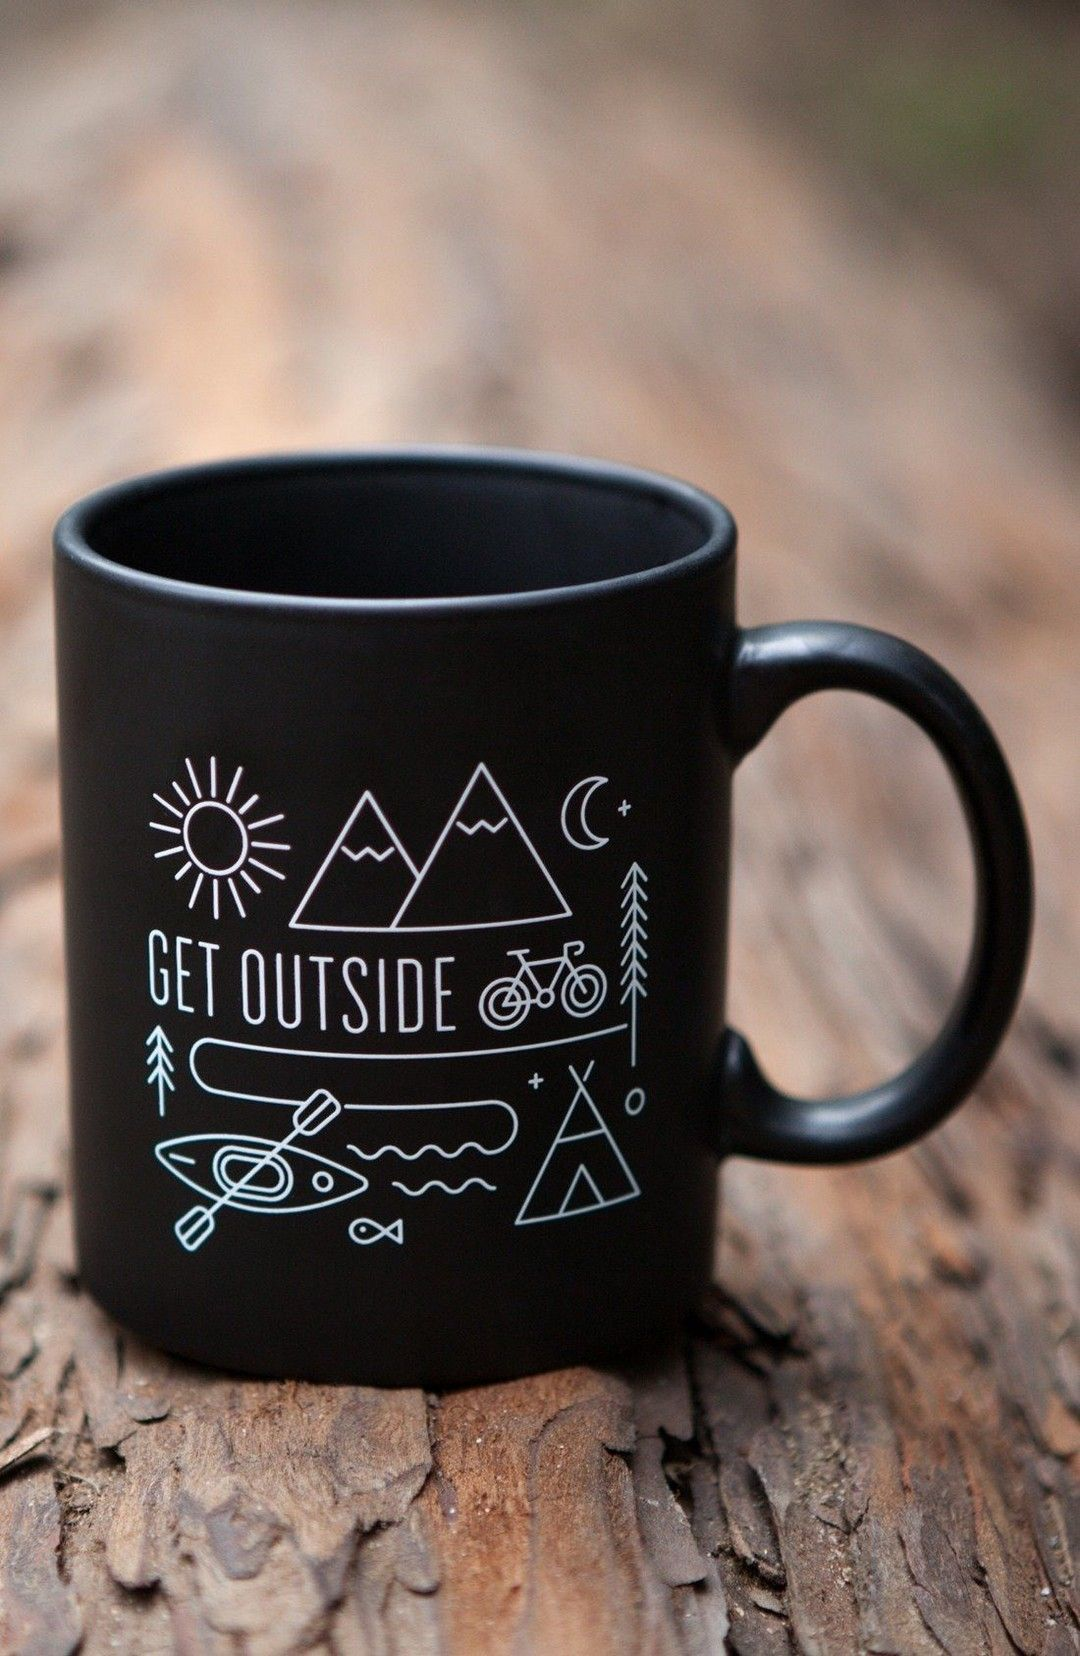 Creative Coffee Cup Designs You Need To See